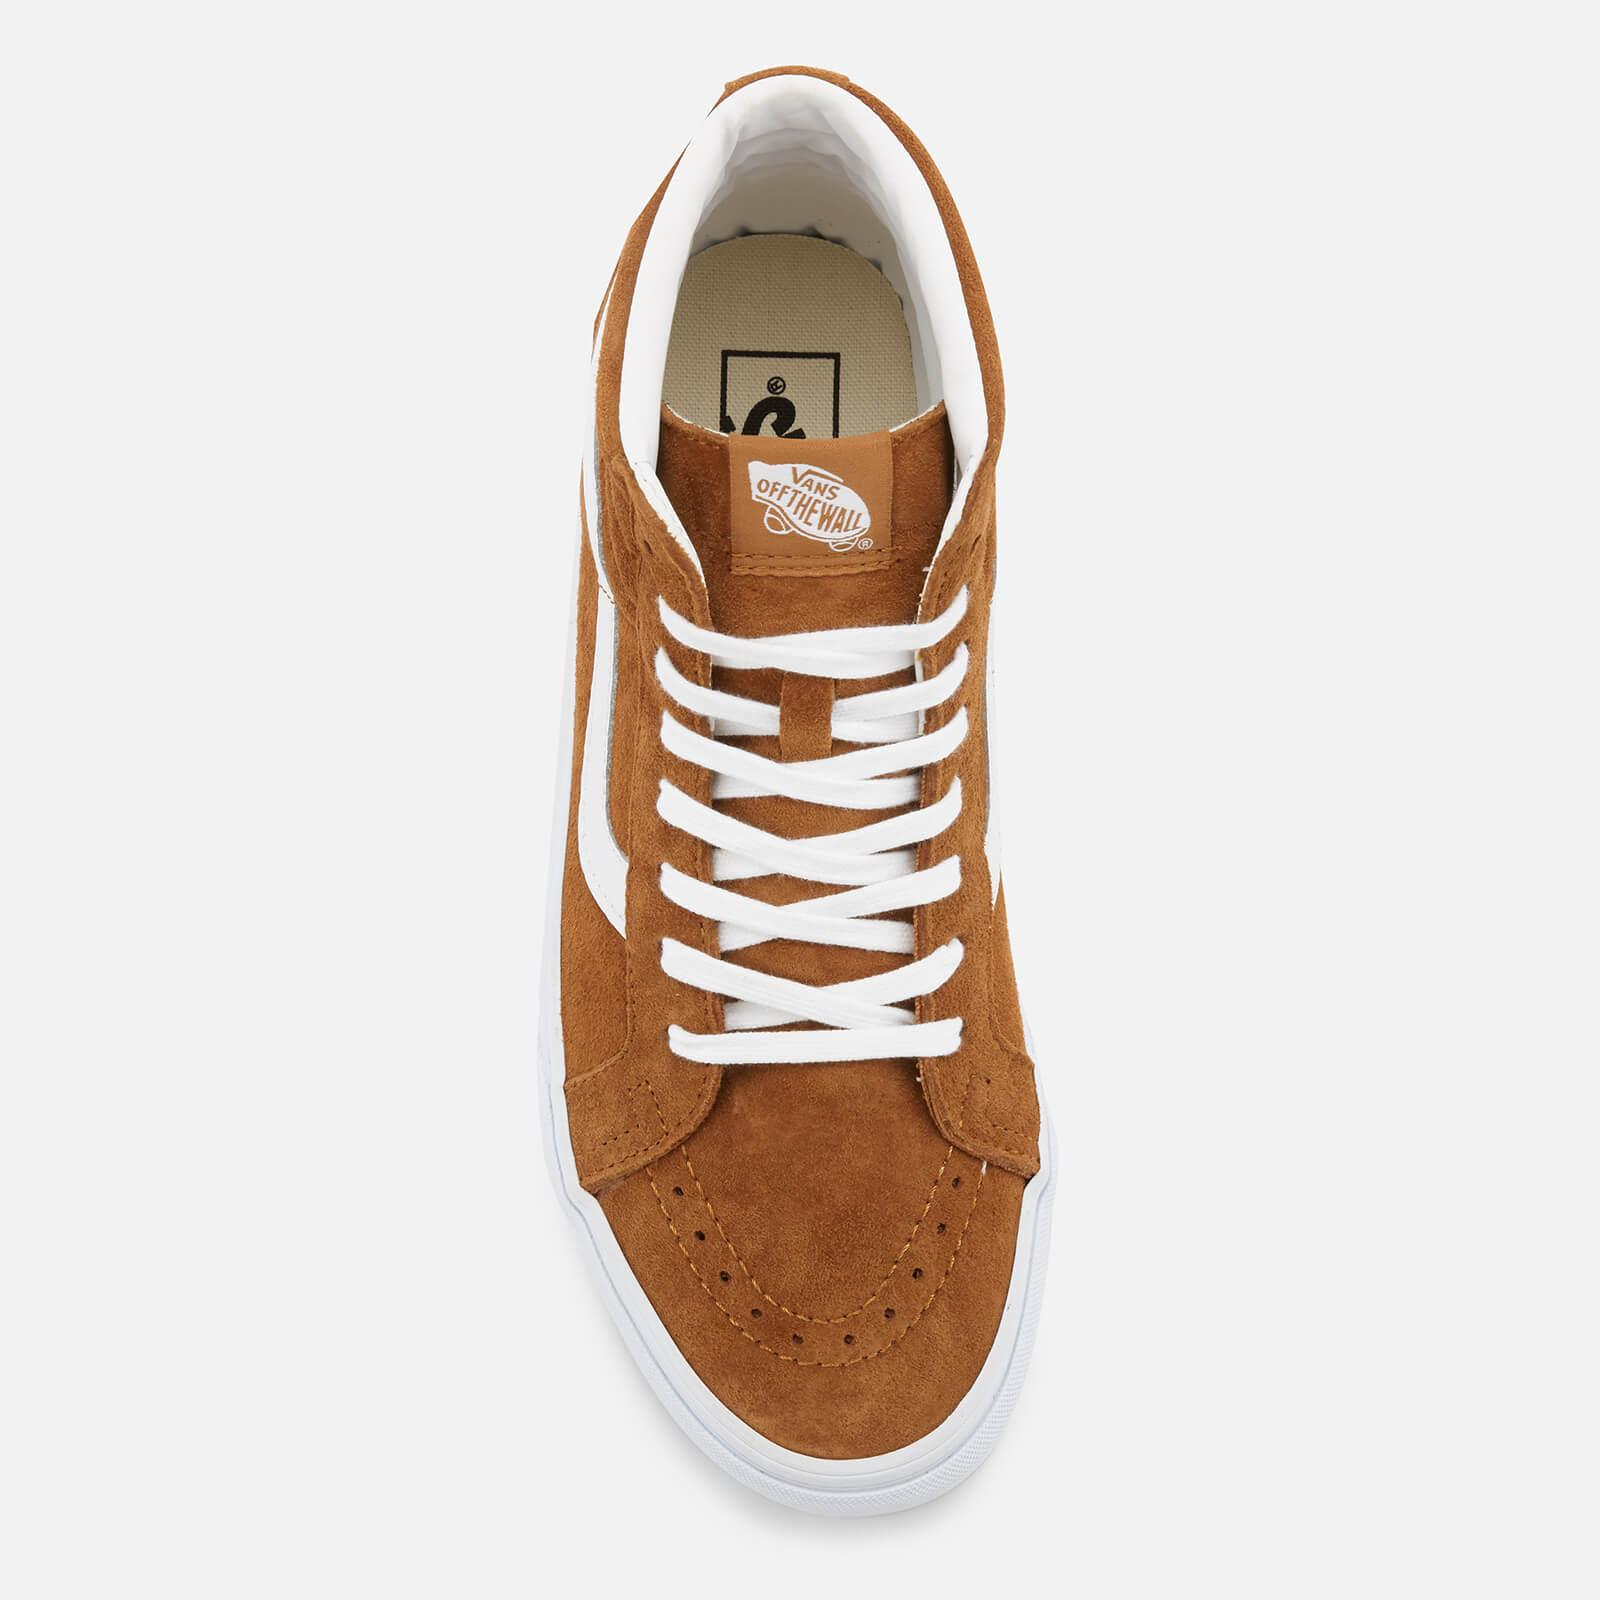 52c59e4ec6 Lyst - Vans Sk8-hi Reissue Suede Trainers in Brown for Men